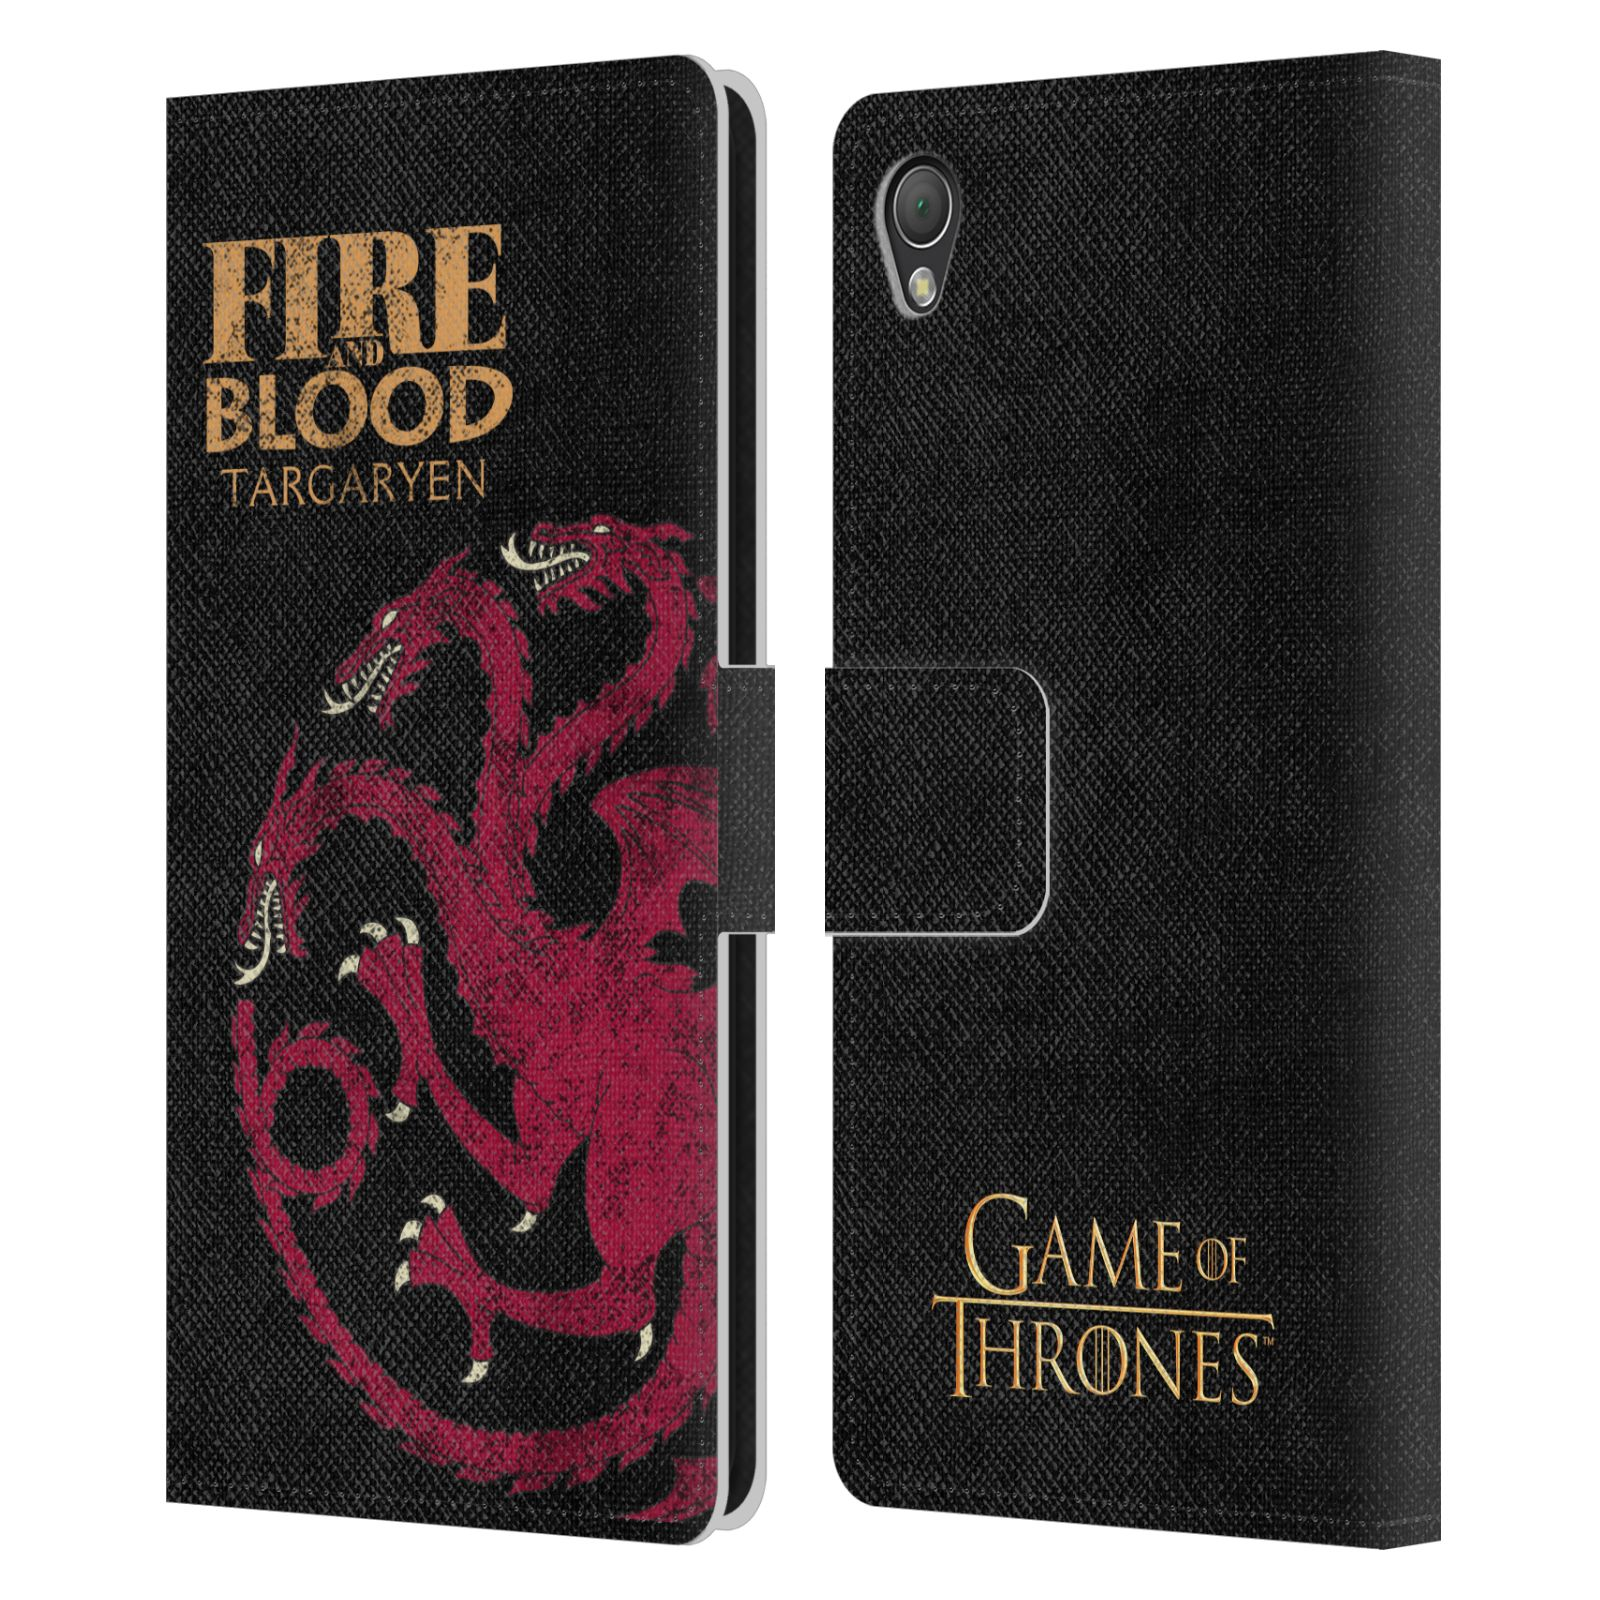 OFFICIAL HBO GAME OF THRONES HOUSE MOTTOS LEATHER BOOK CASE FOR SONY PHONES 1